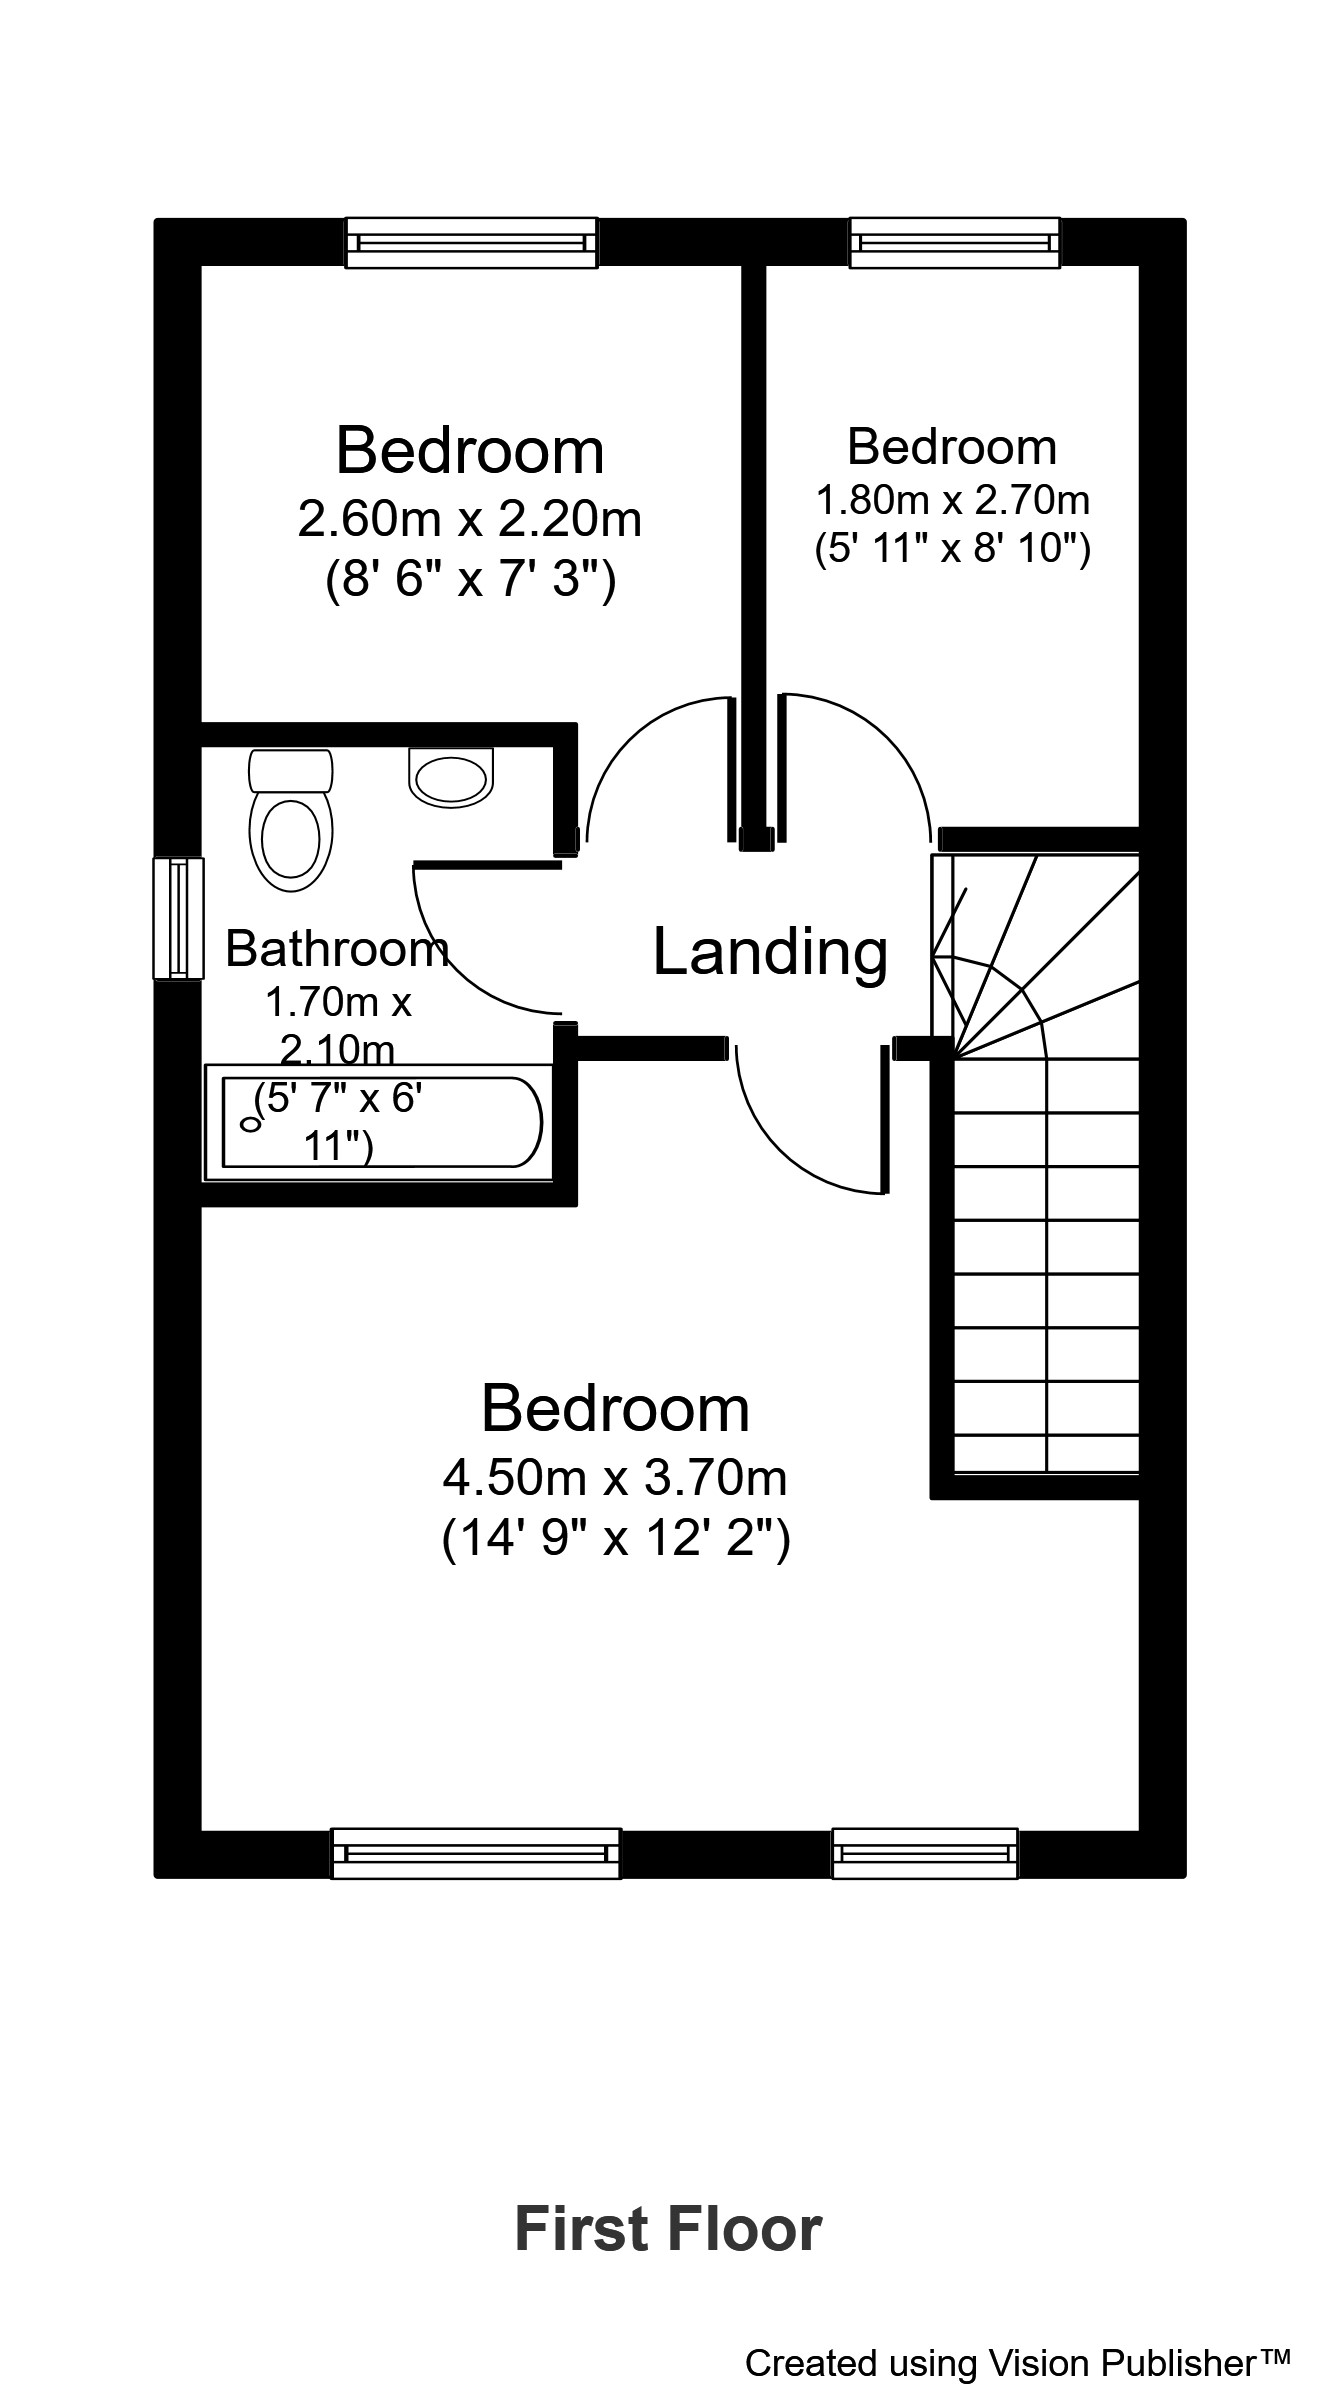 5 finchley close 1st Floor Plans (Auto Sized) (2)